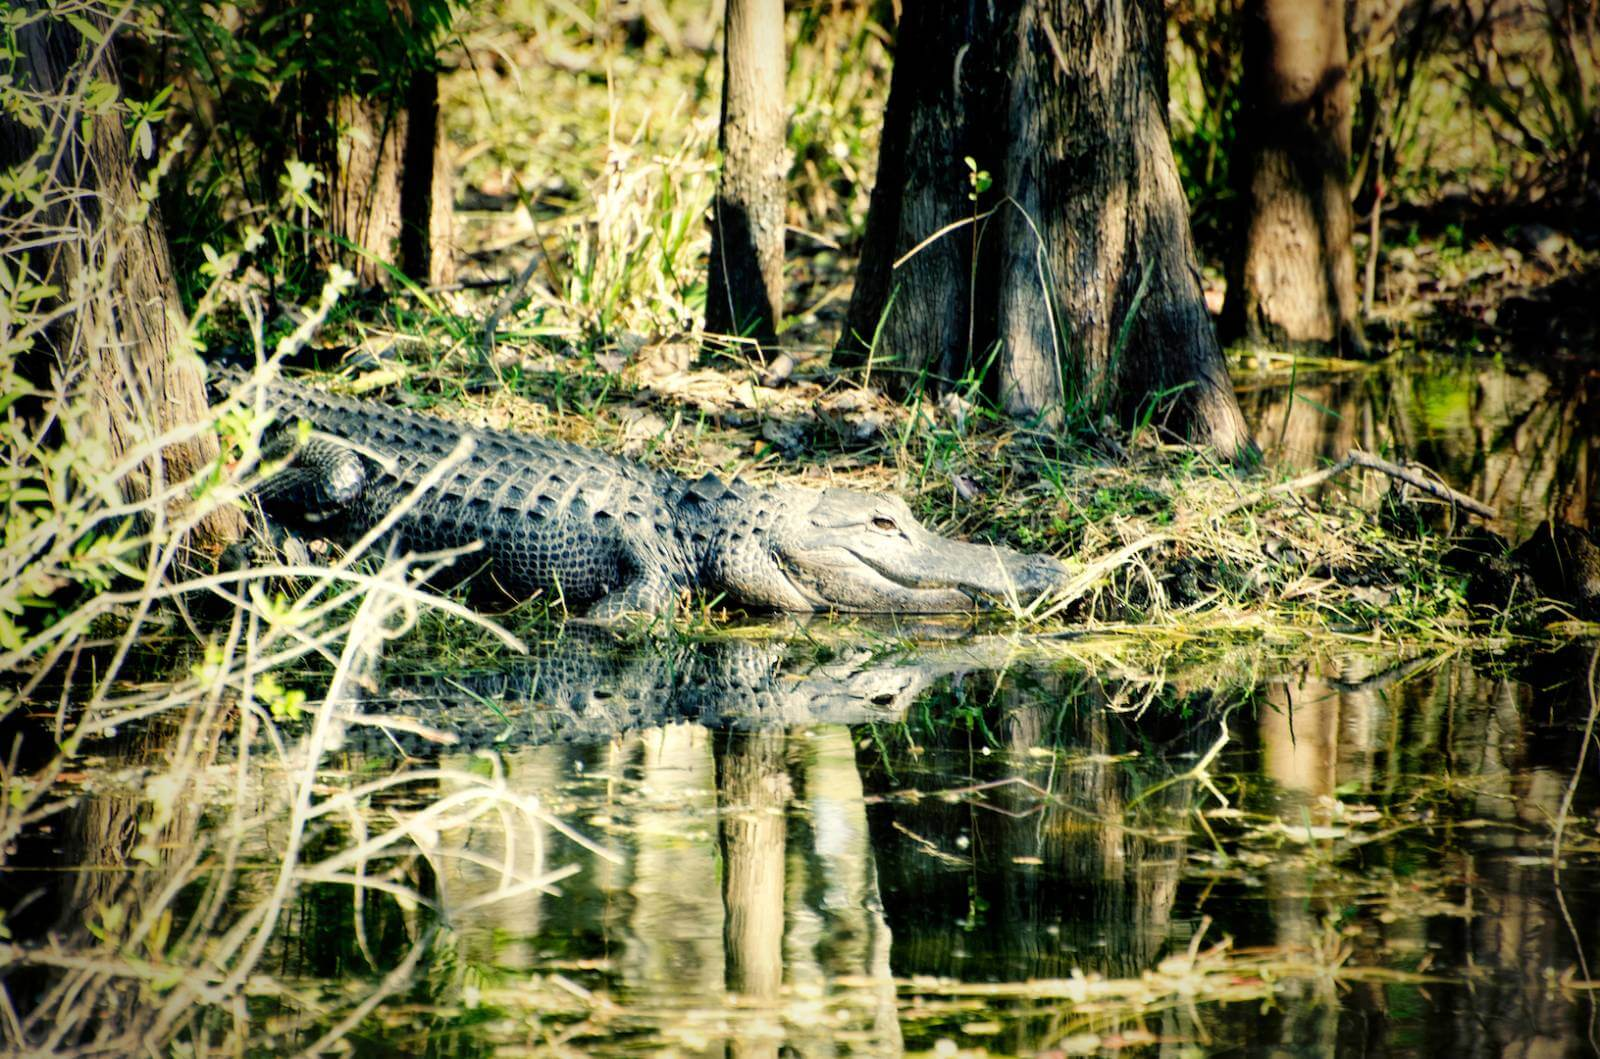 The Western Everglades is the only place in the world where you can find both alligators and crocodiles. Photo by Jennifer Brinkman